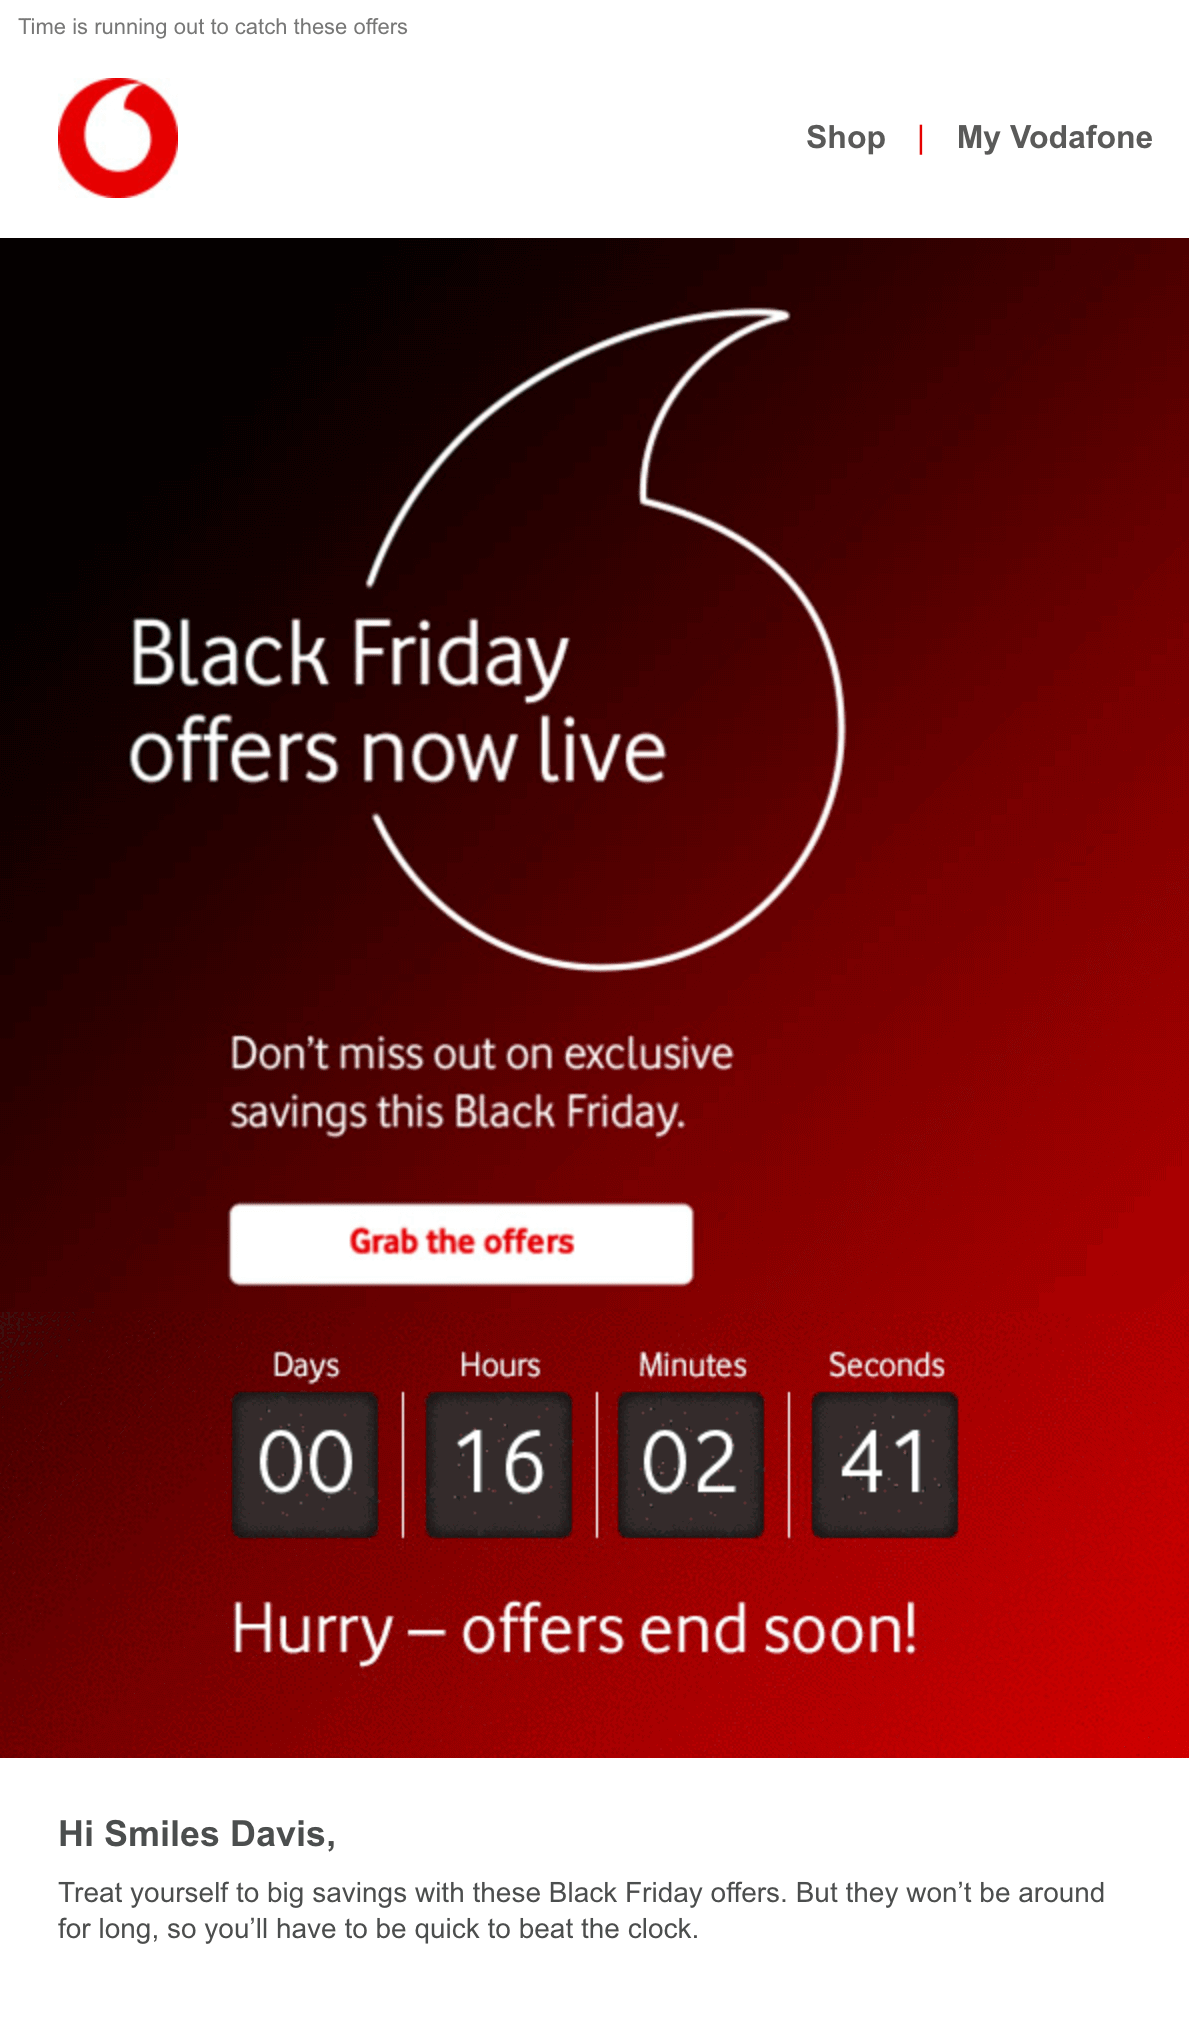 Vodafone Black Friday email example